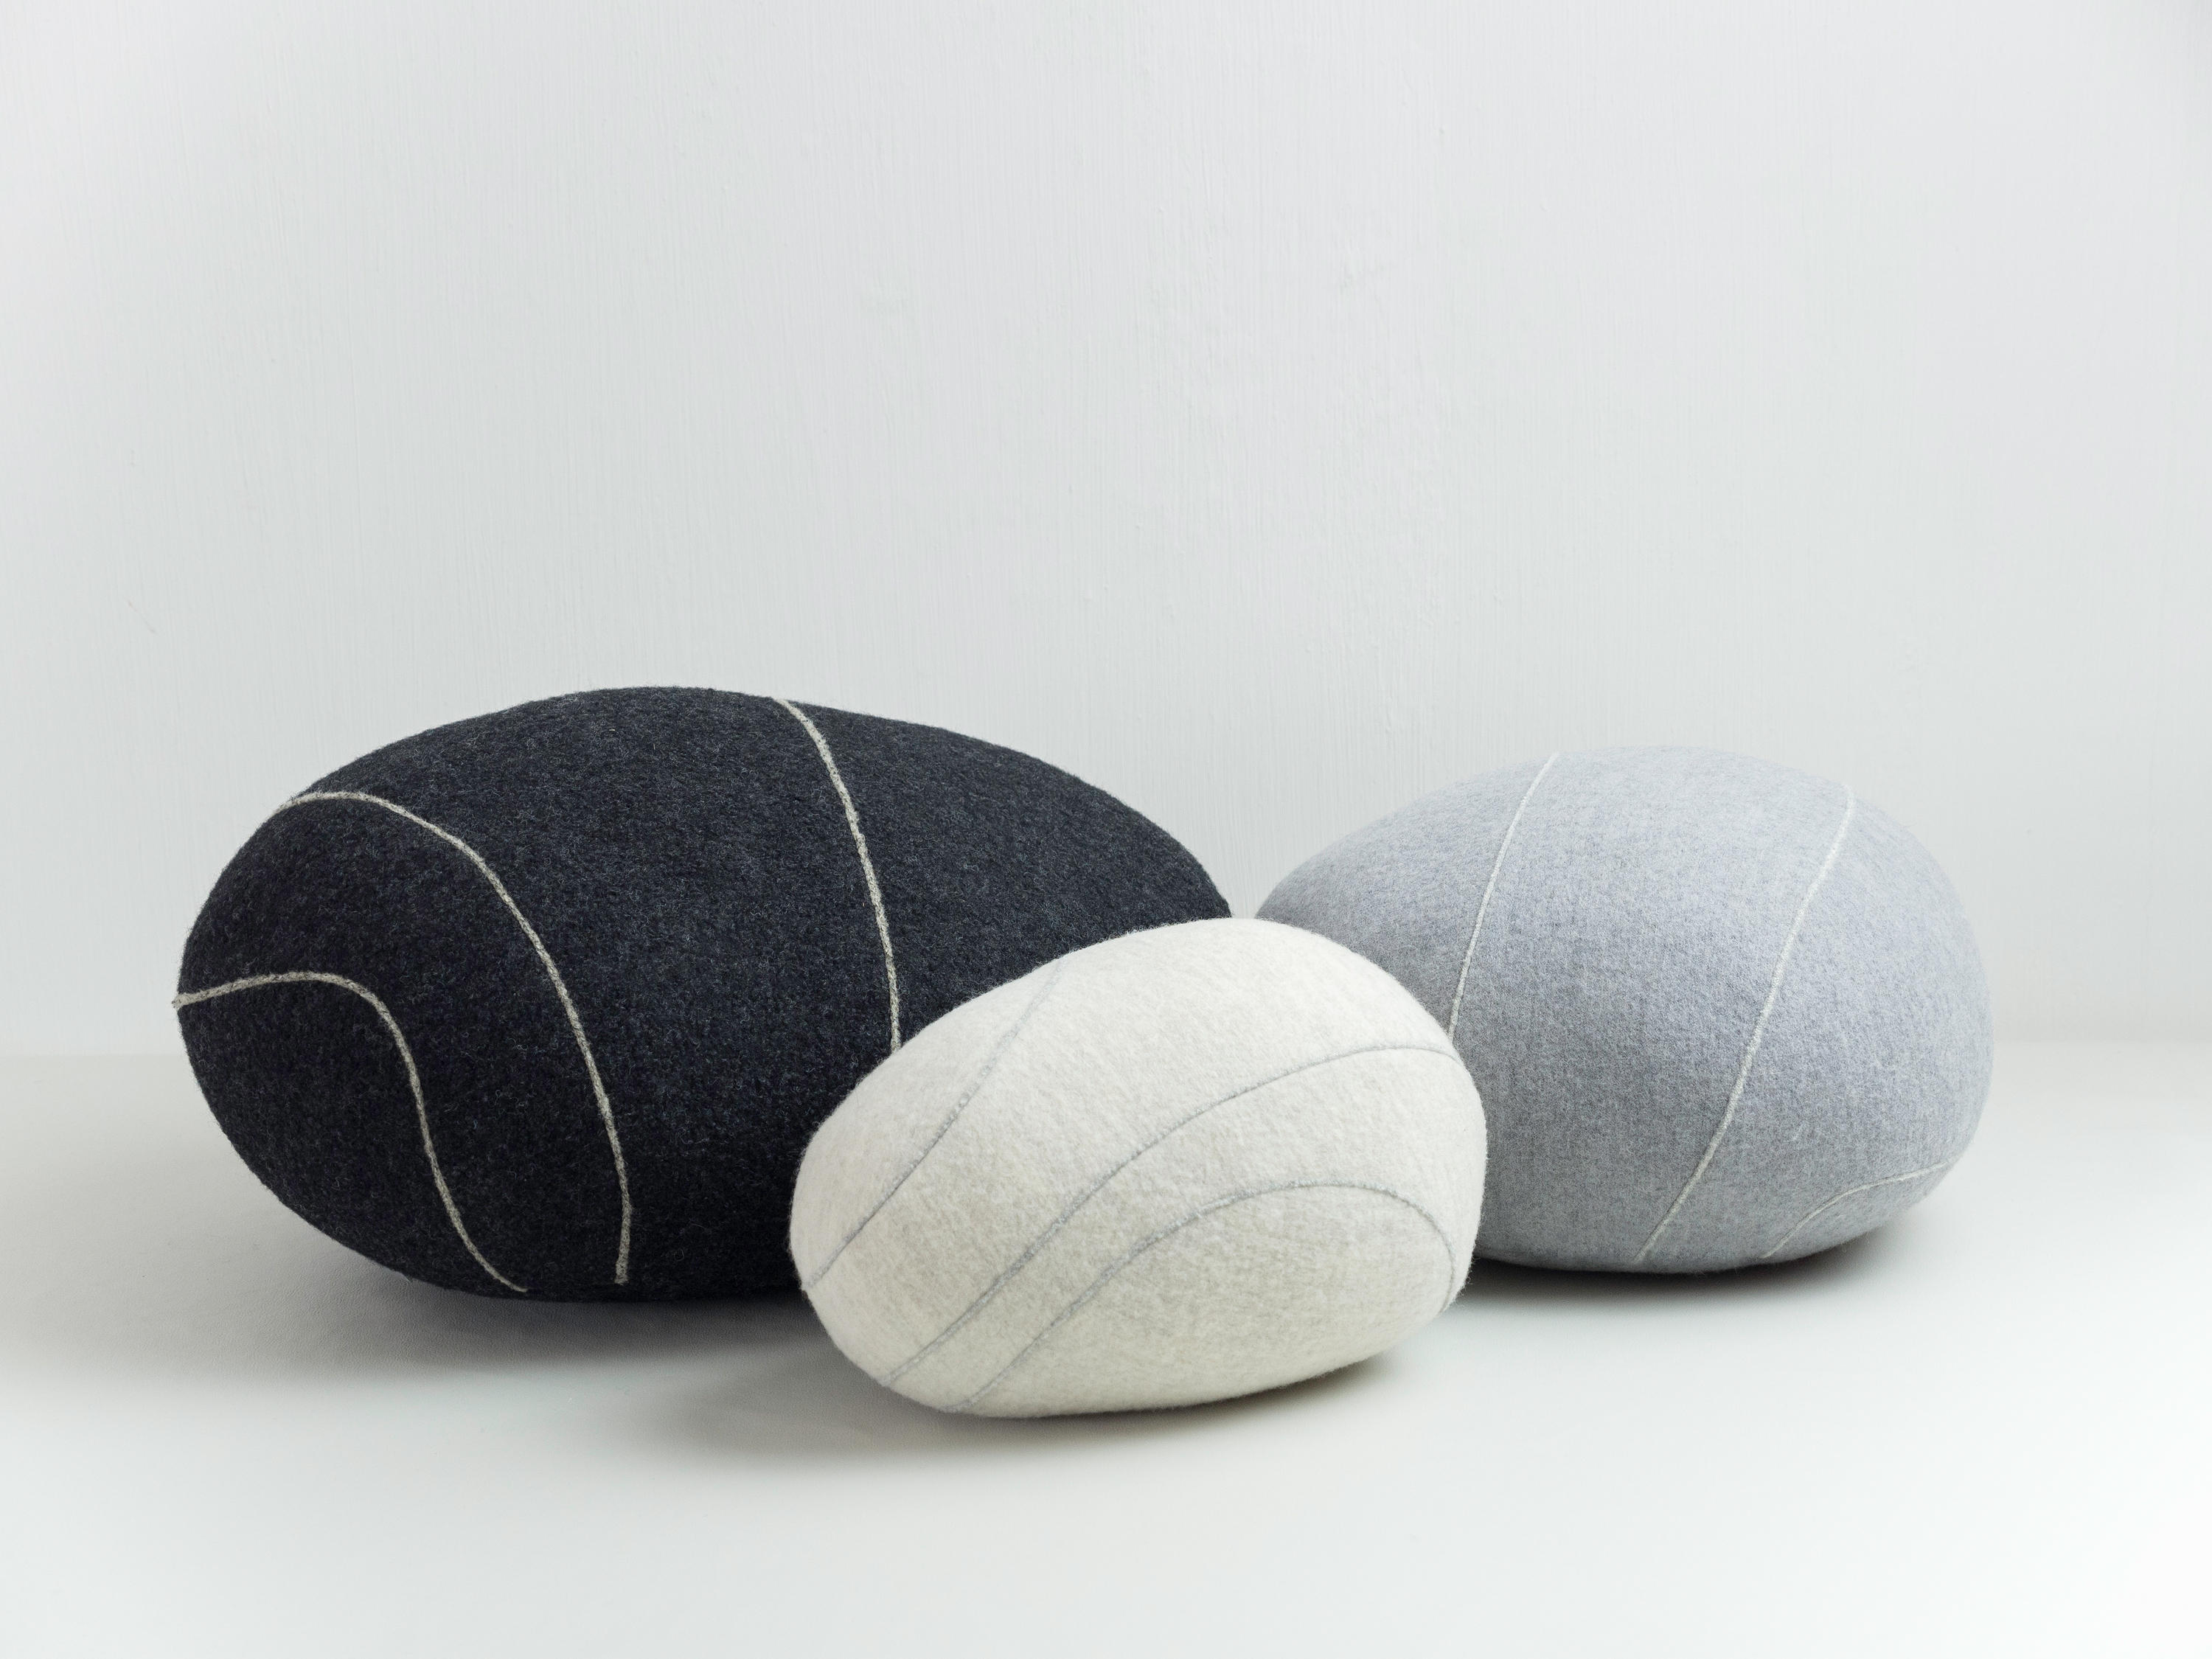 Captivating Livingstones By Smarin | Seat Cushions